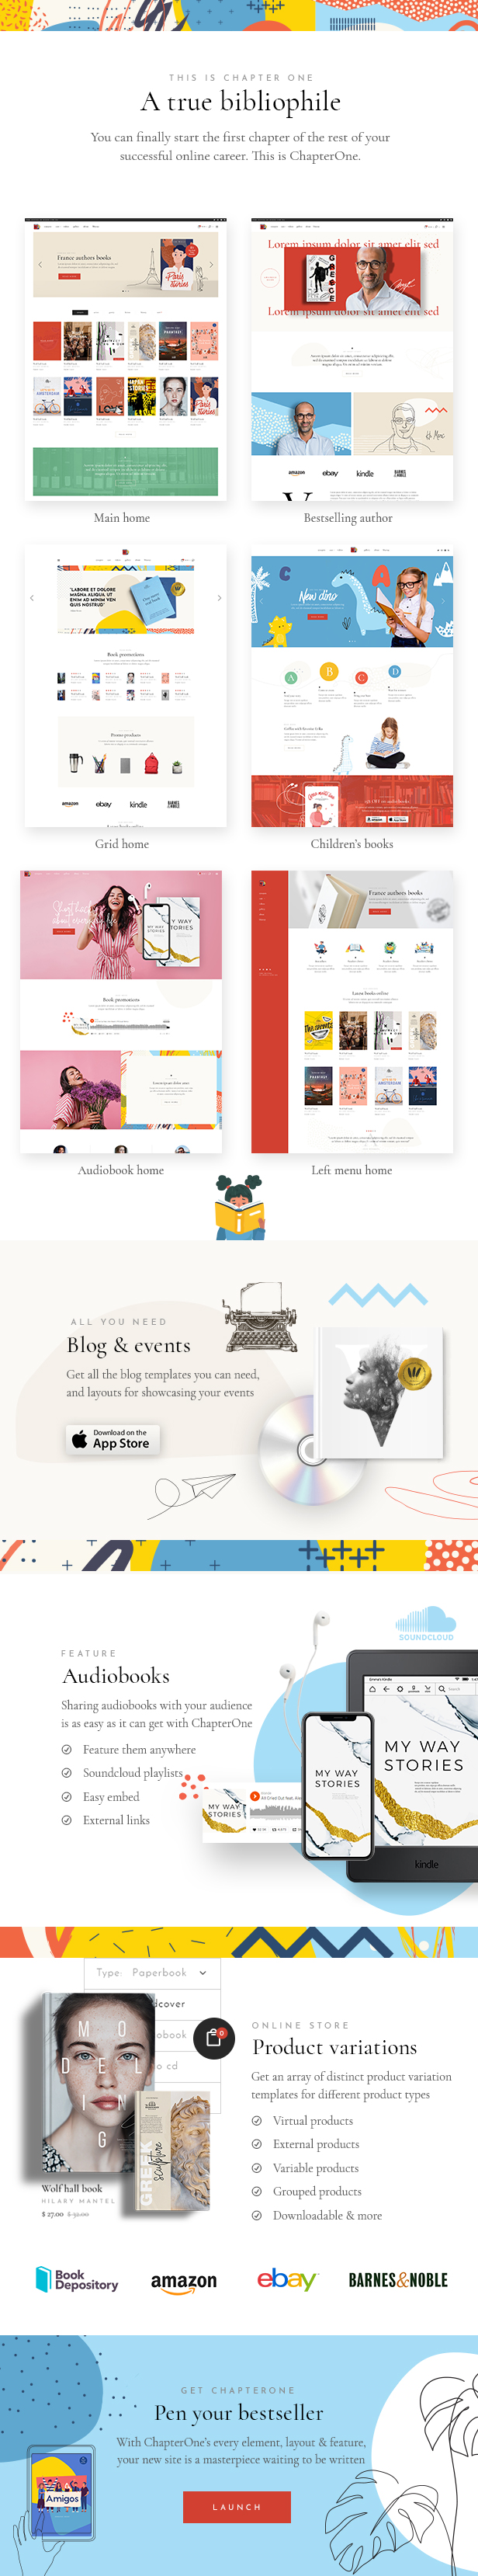 ChapterOne - Bookstore and Publisher Theme - 2